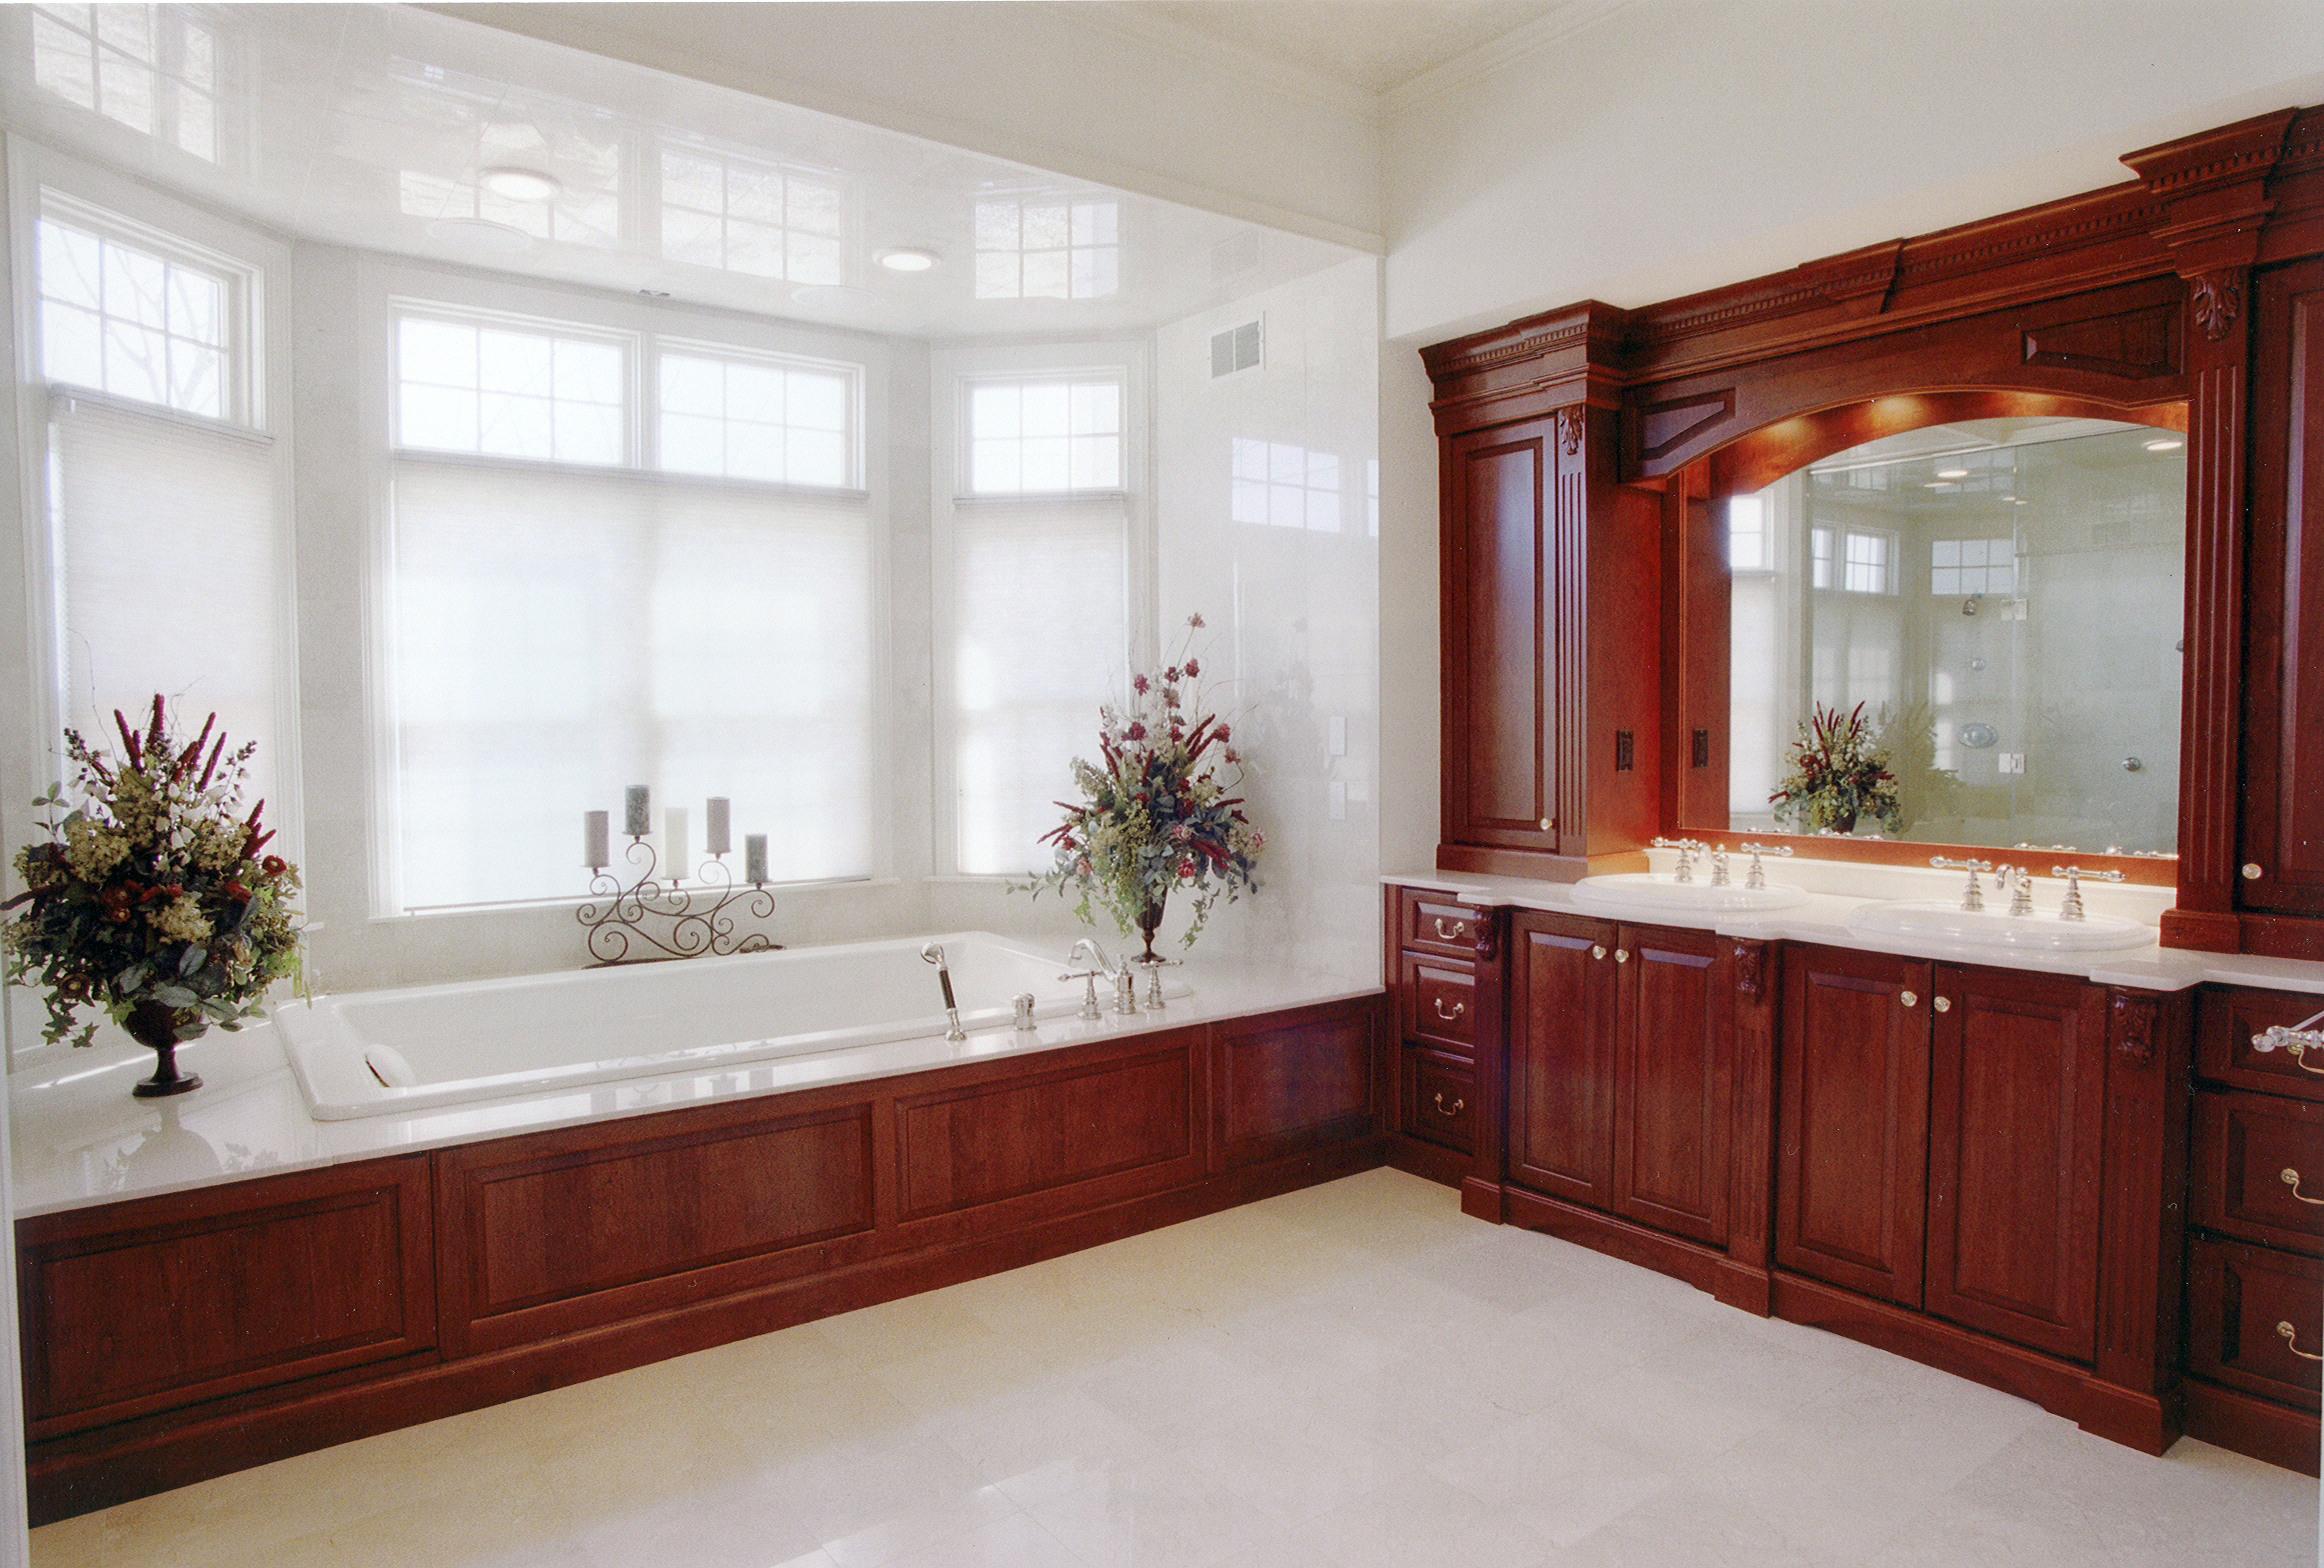 Platinum designs llc custom bathroom cabinetry master for Custom bathroom designs